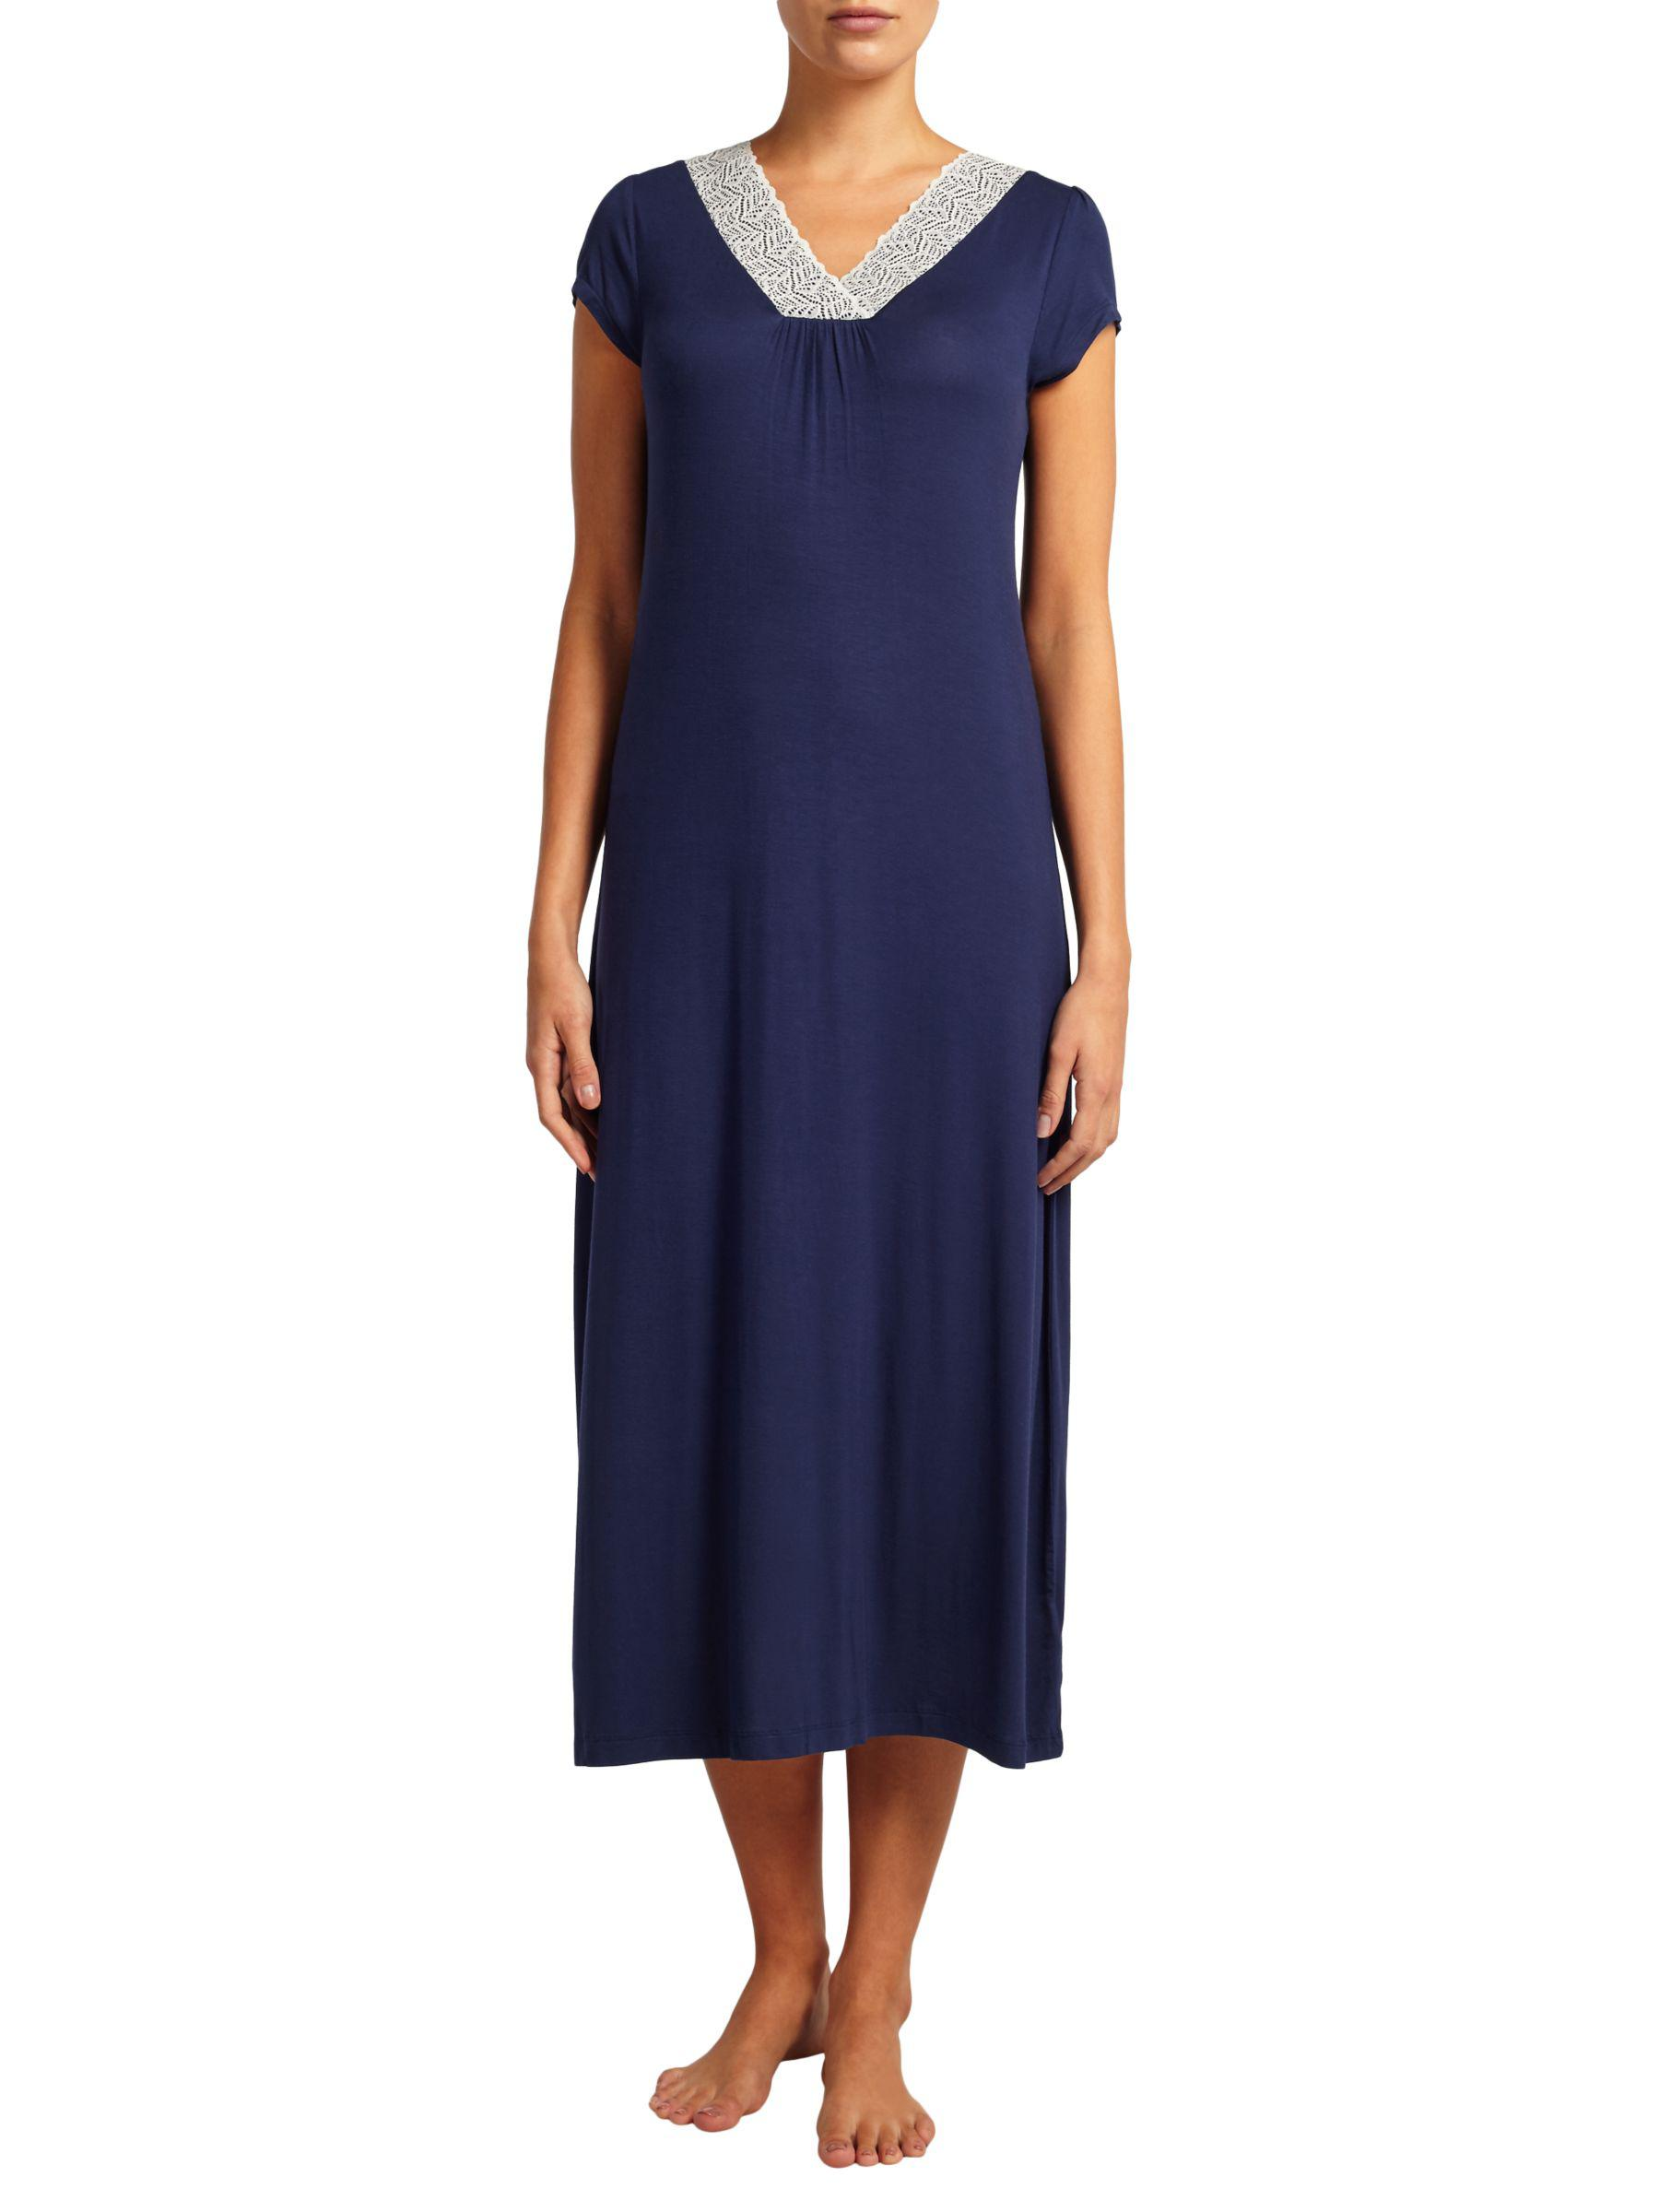 b336bcc5f9 John Lewis Alicia Long Jersey Nightdress in Blue - Lyst